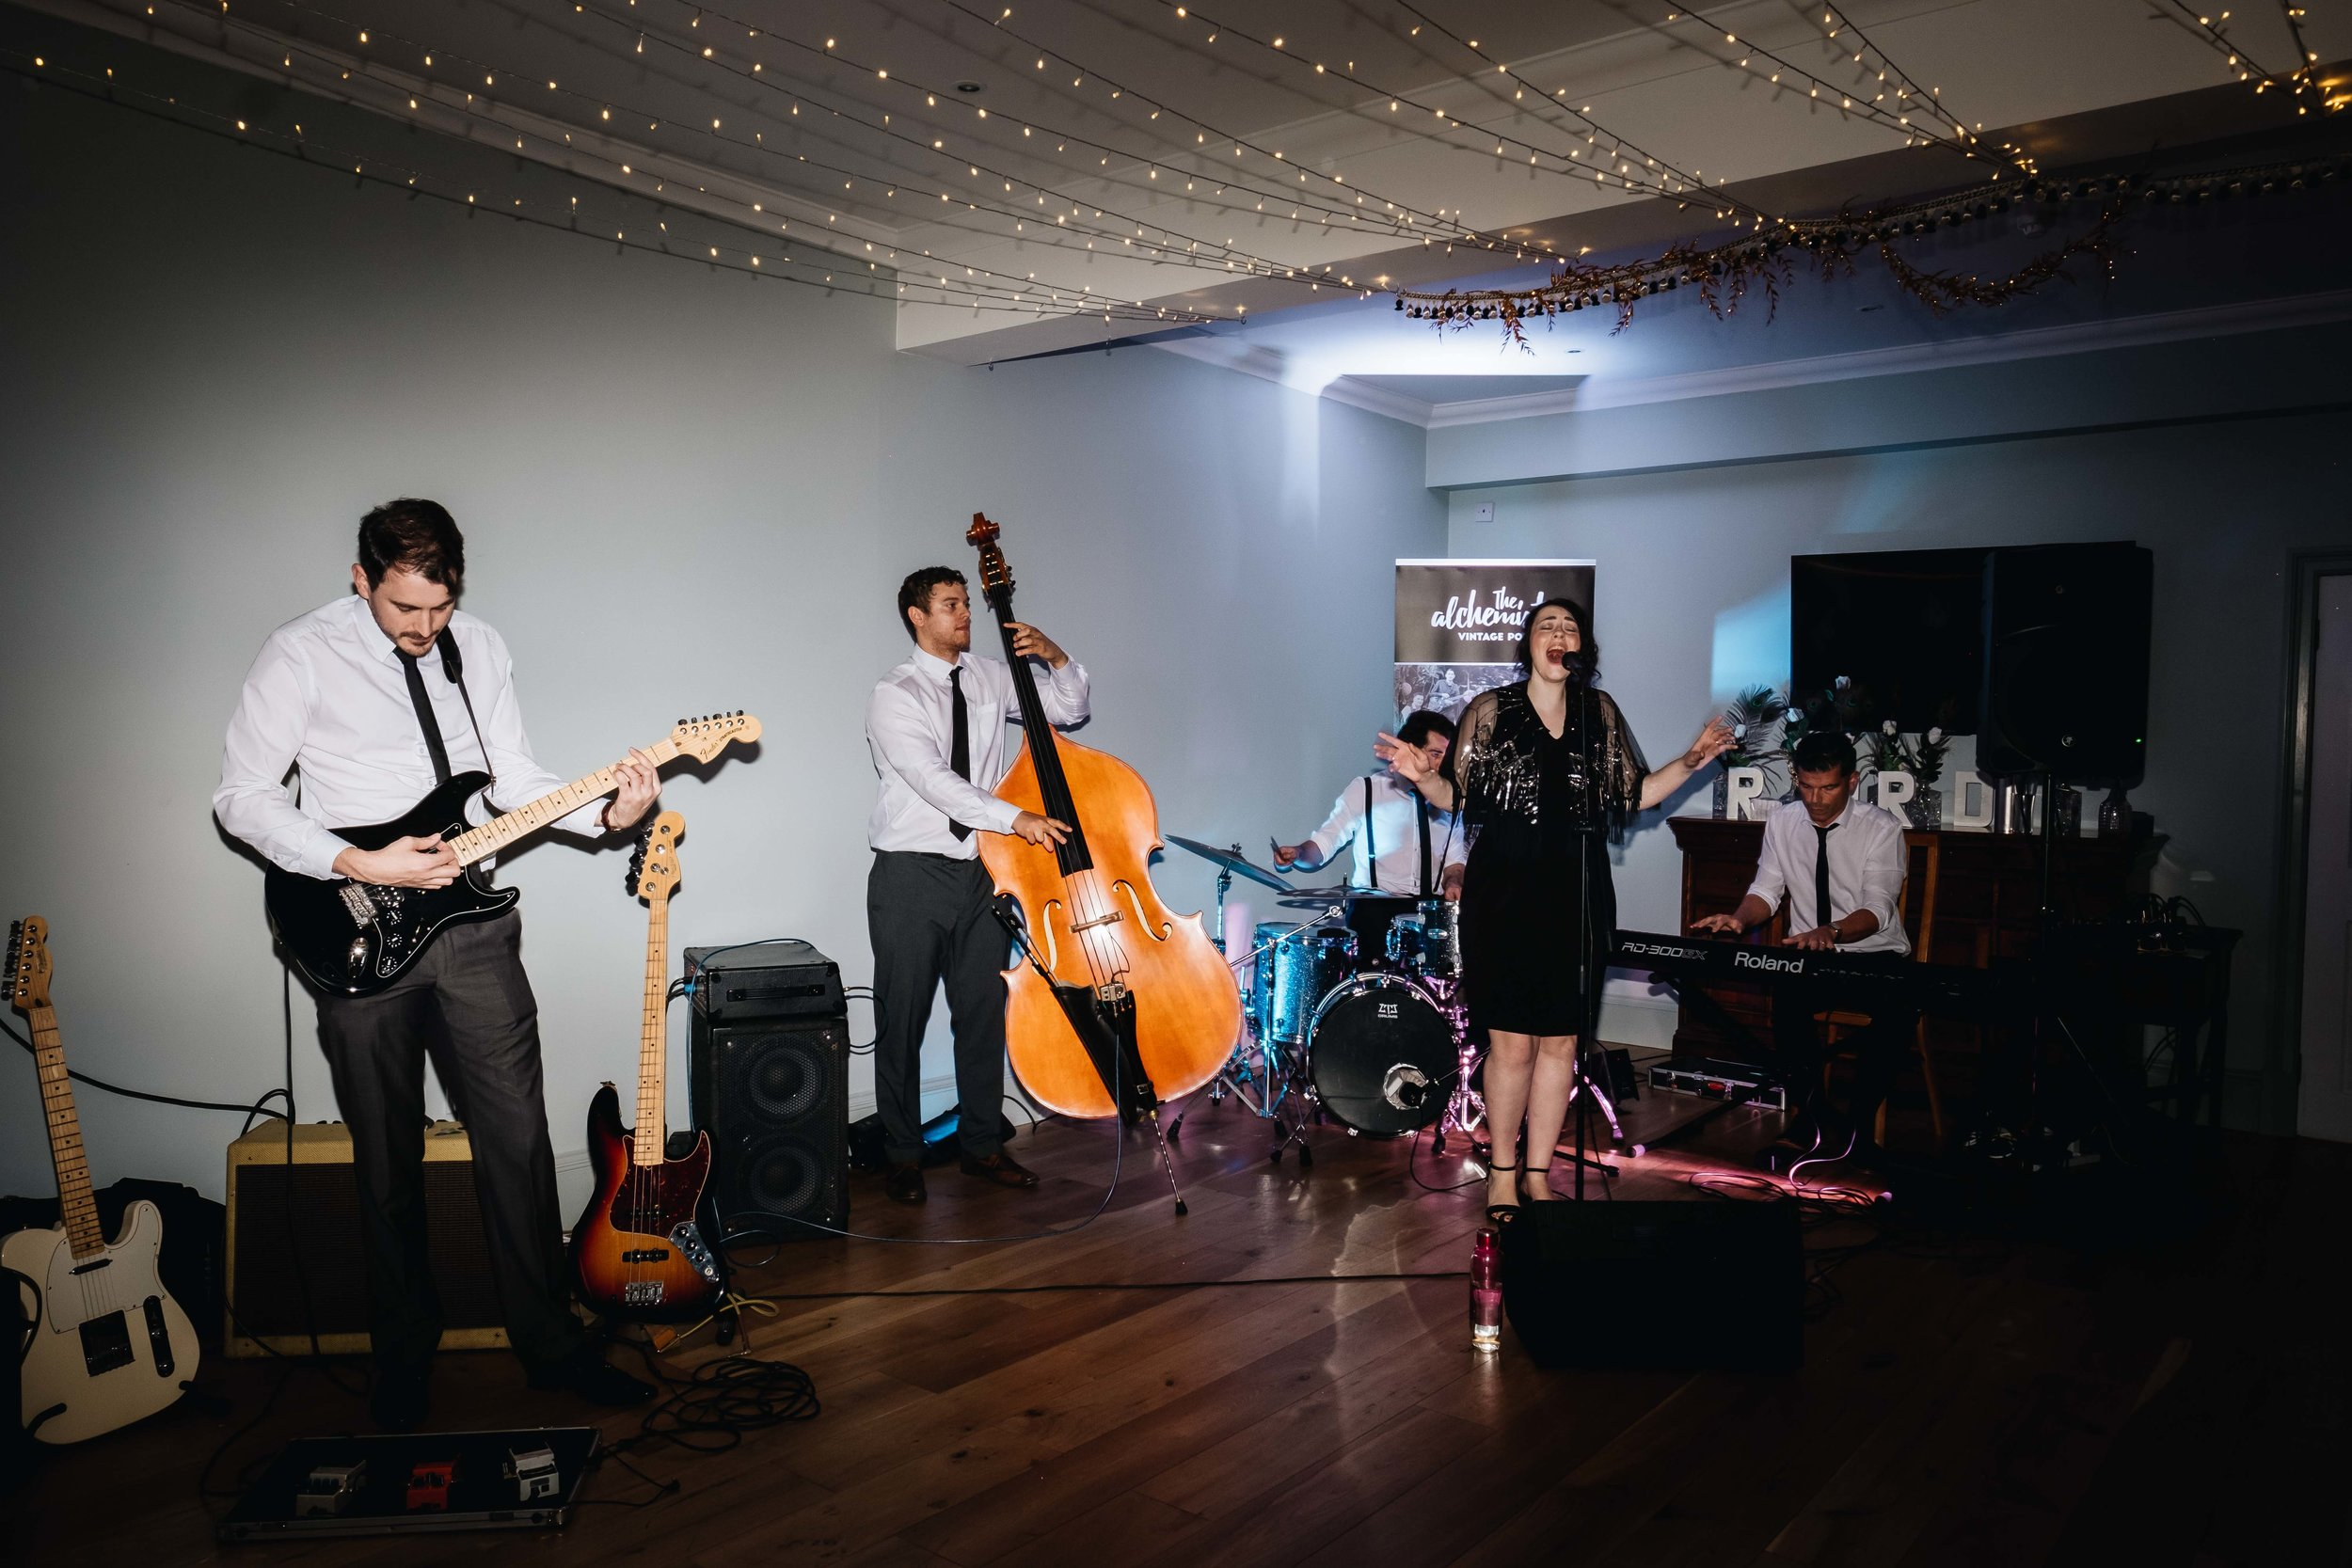 band play during party